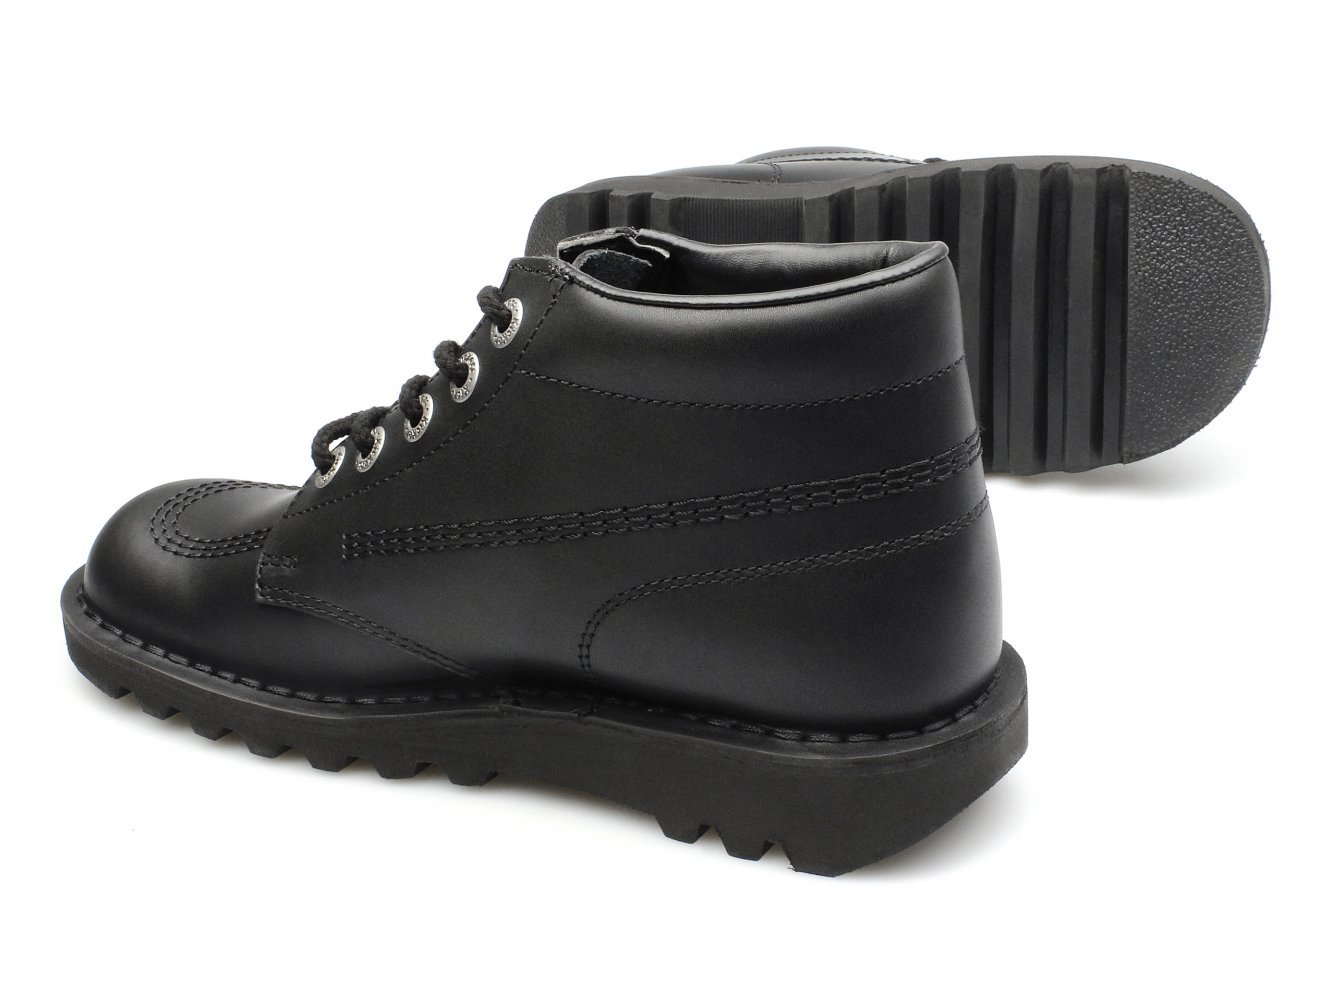 KICK HI M CORE Mens Leather Lace-Up Boots Black: Amazon.co.uk: Shoes & Bags